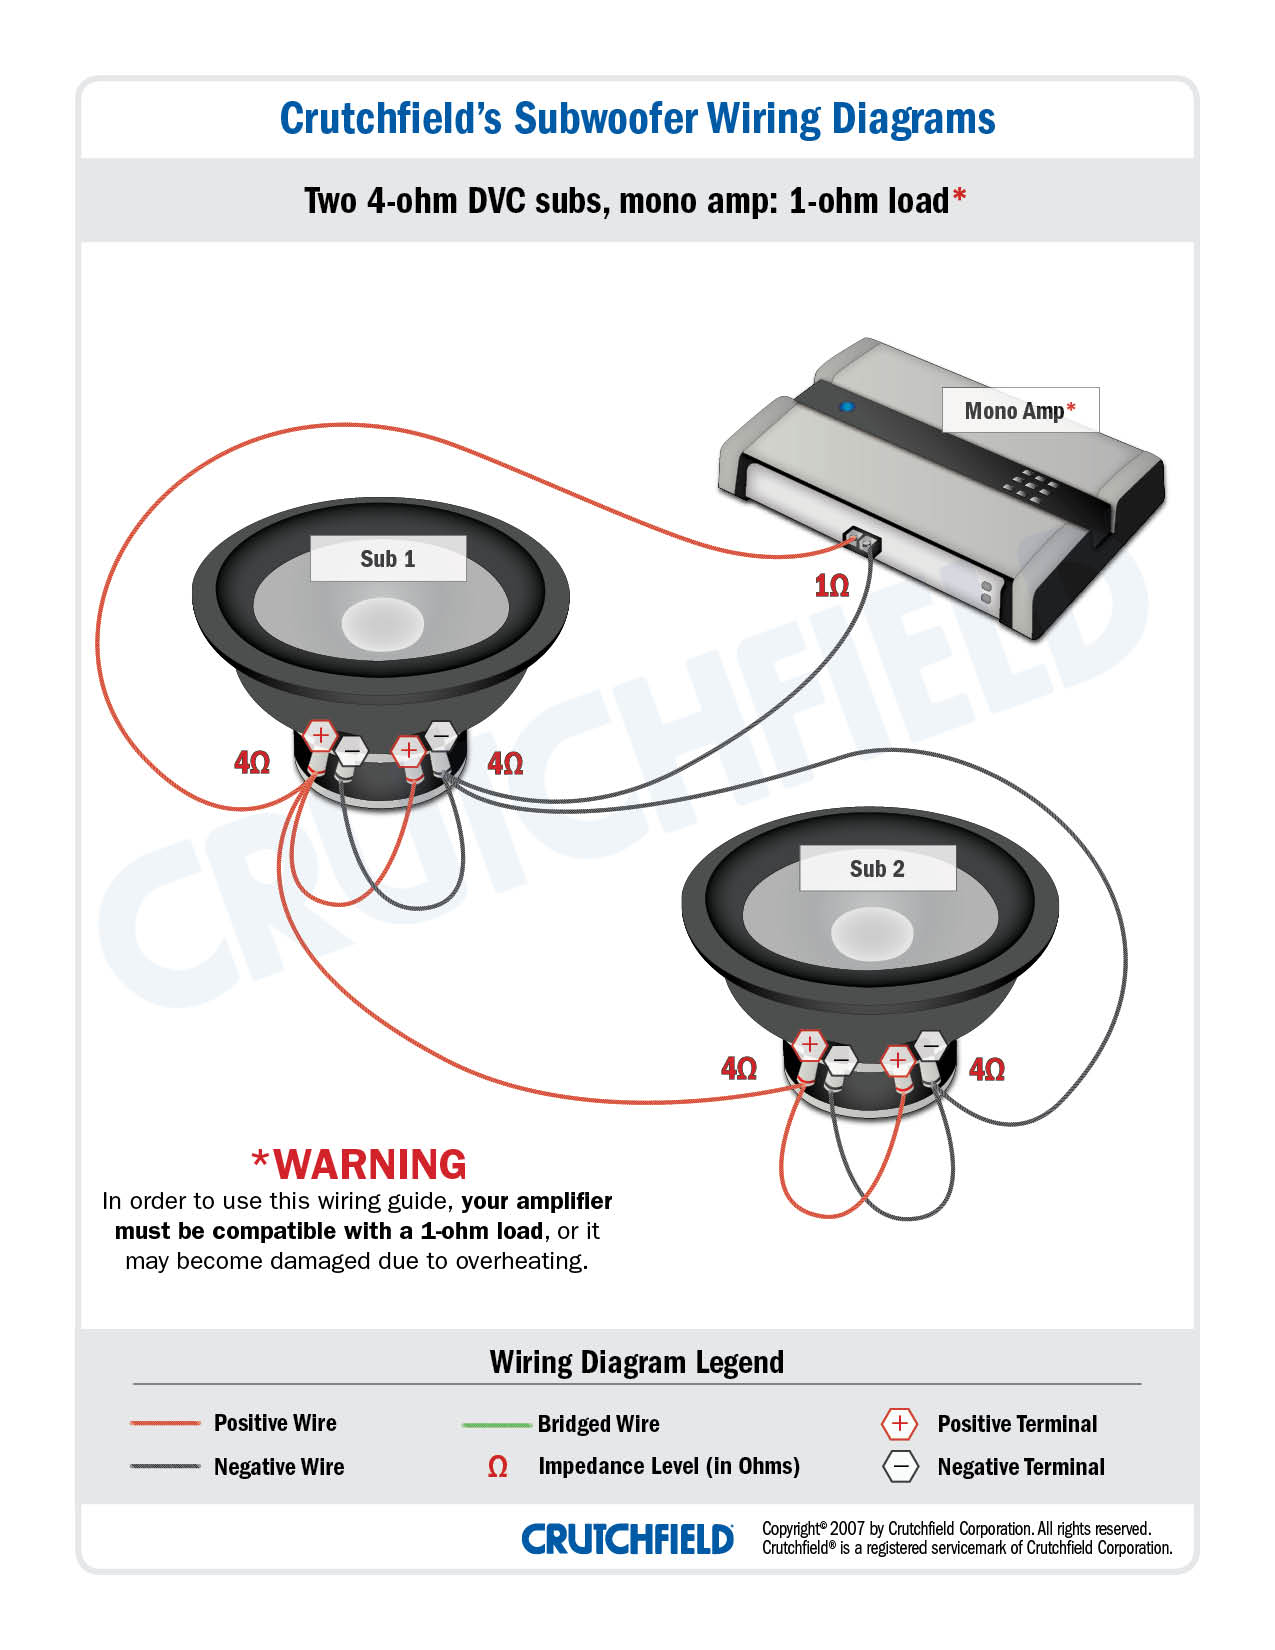 how to wire car speakers amp diagram leg bones labeled quick guide matching subs & amps: put together the best and sub combo